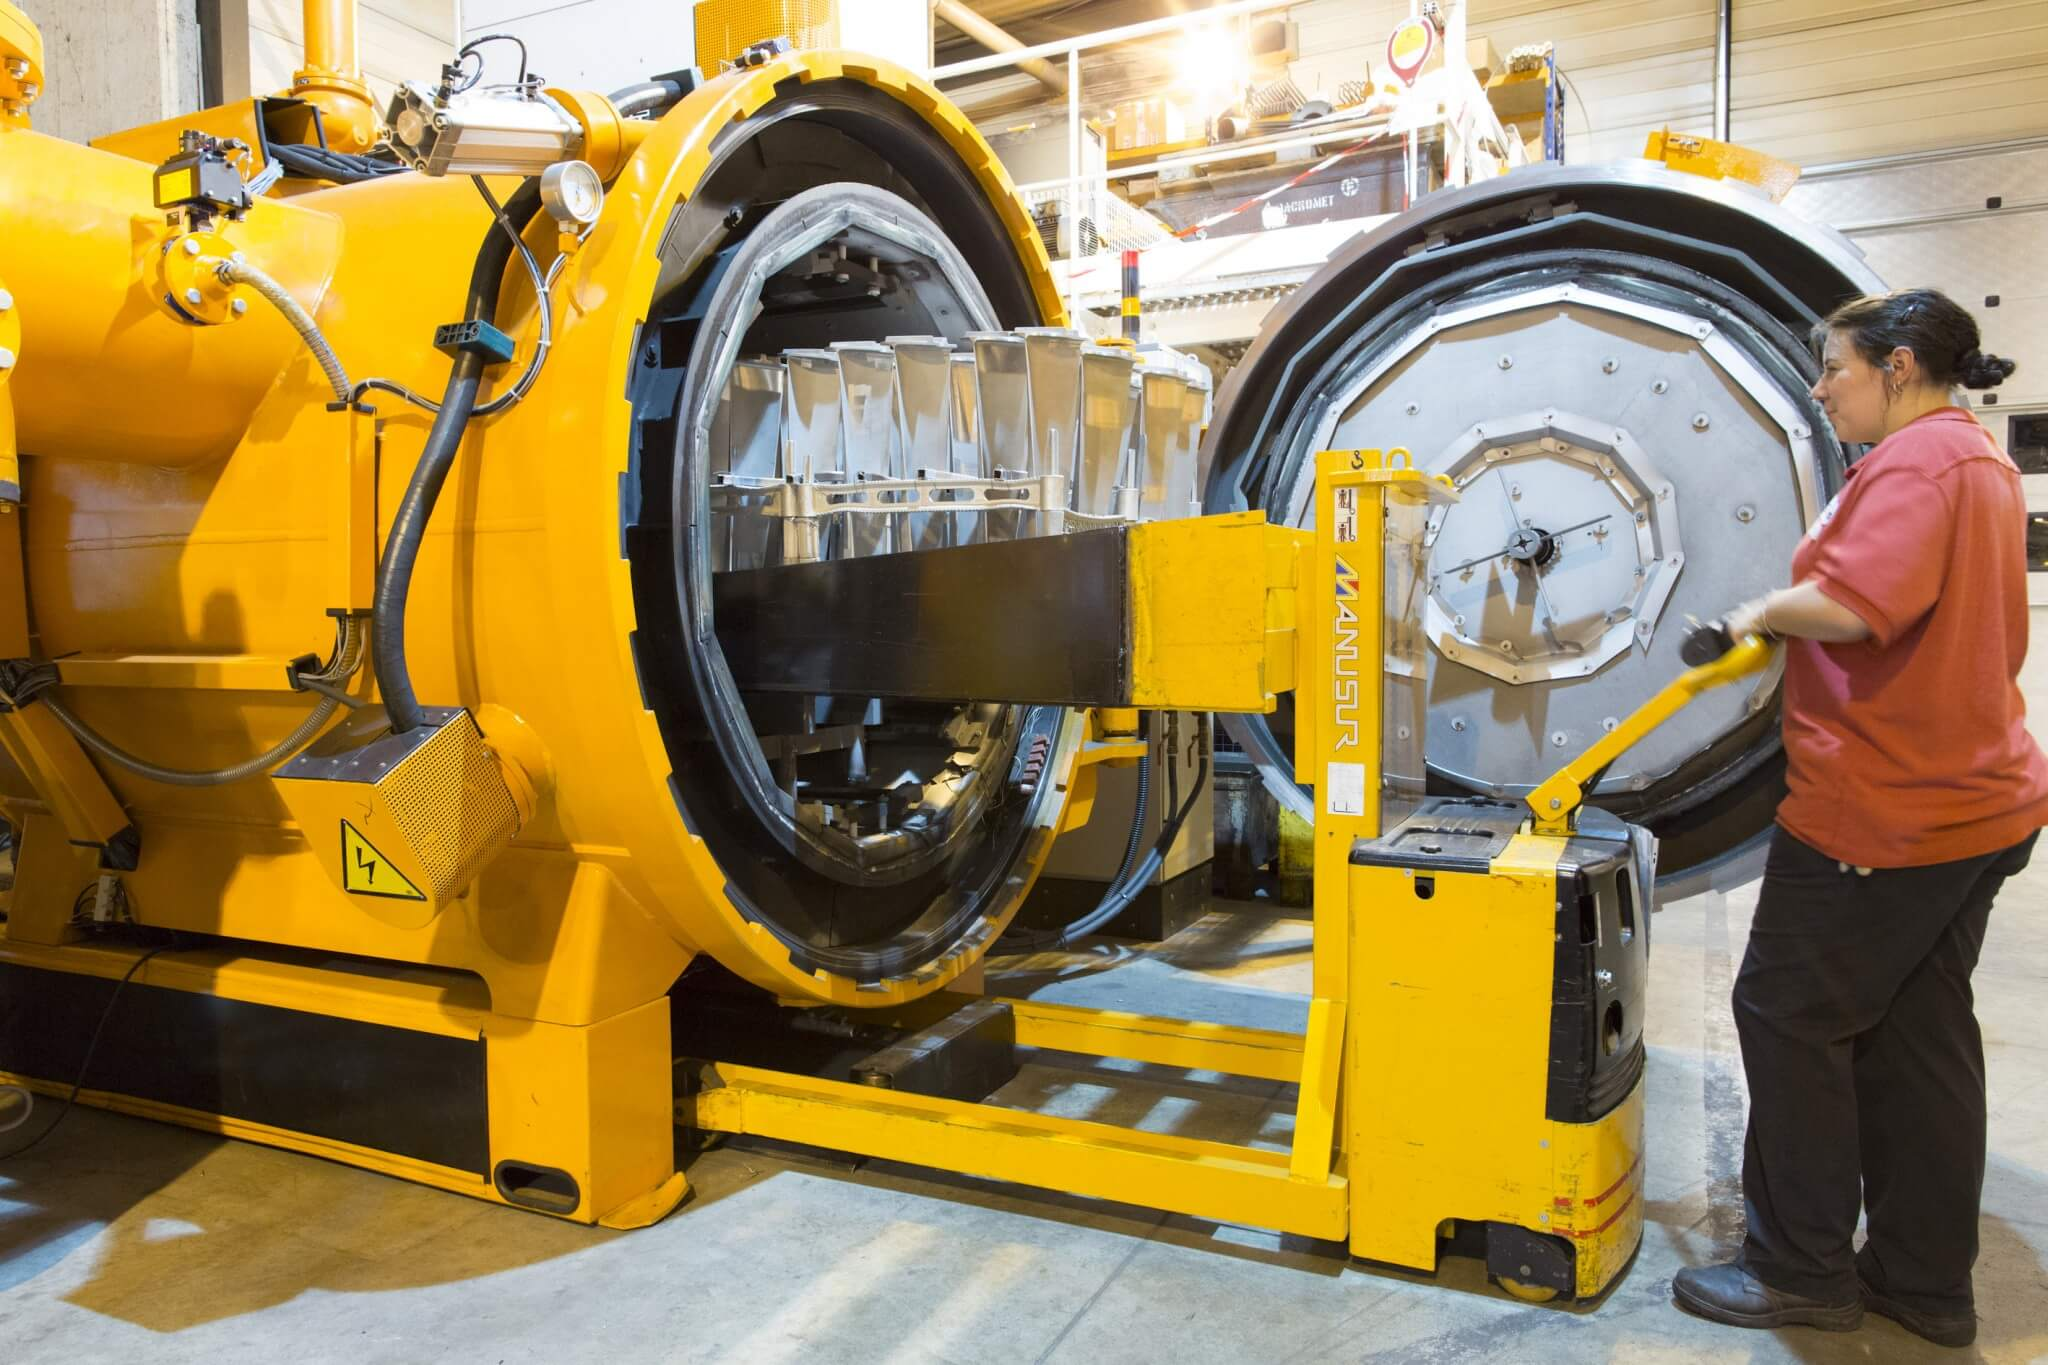 state-of-the-art brazing expertise for sustainable initiative